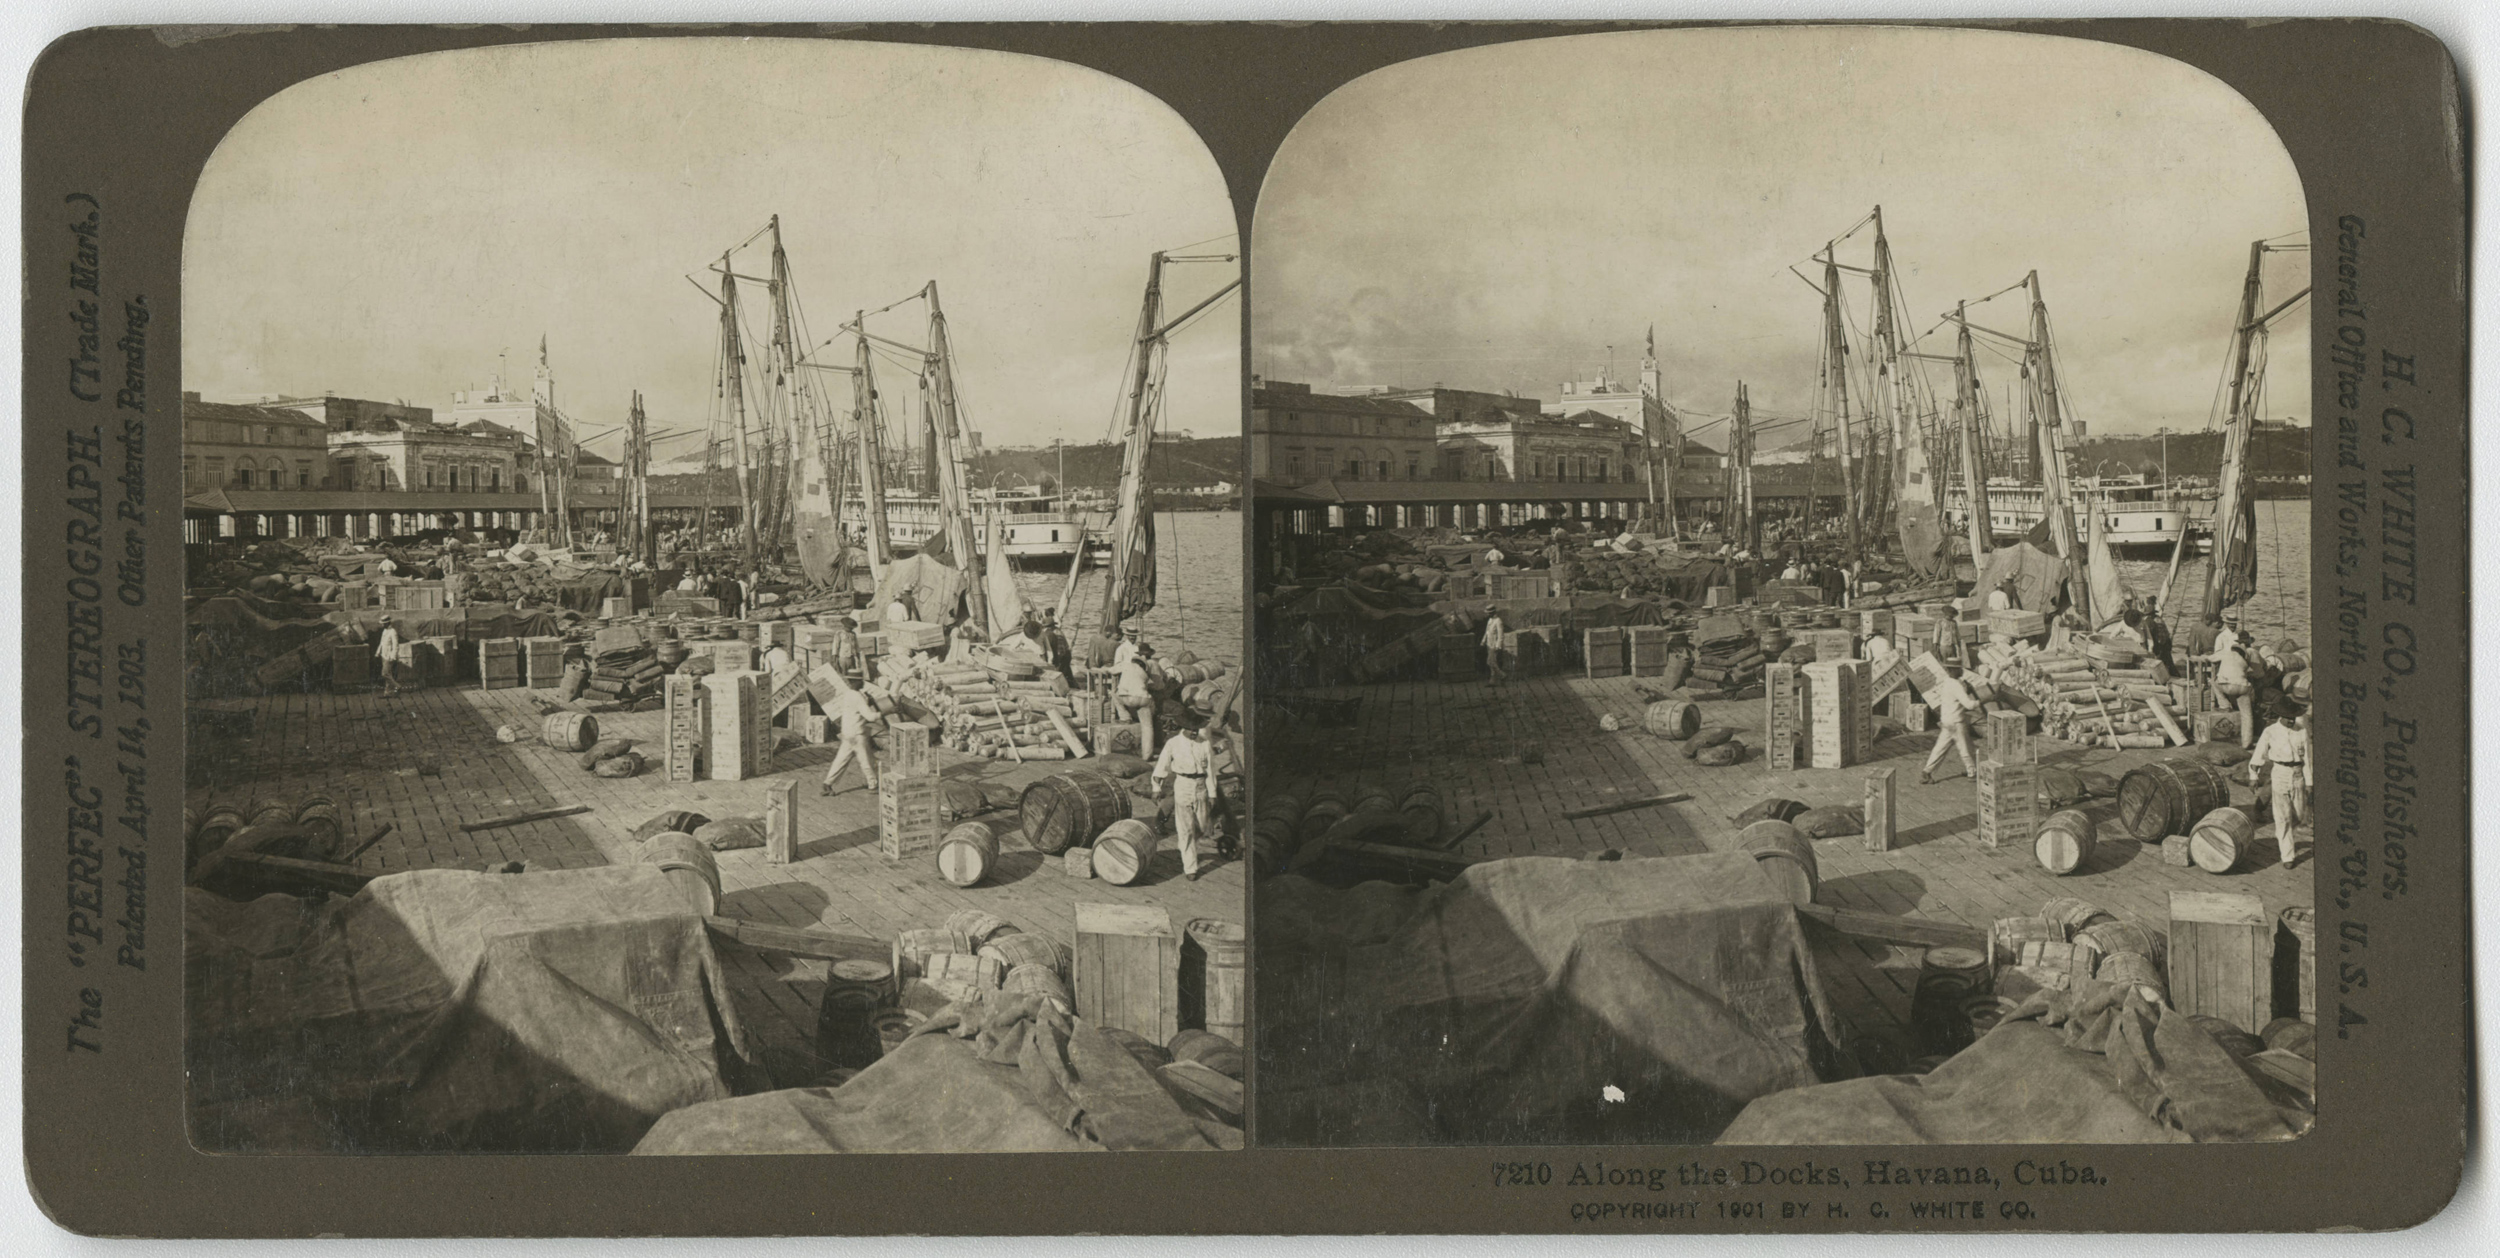 Along the docks of the harbor in La Habana, stereo photo from 1901. Cuban Photograph Collection by the  University of Miami Libraries . Image Public Domain.